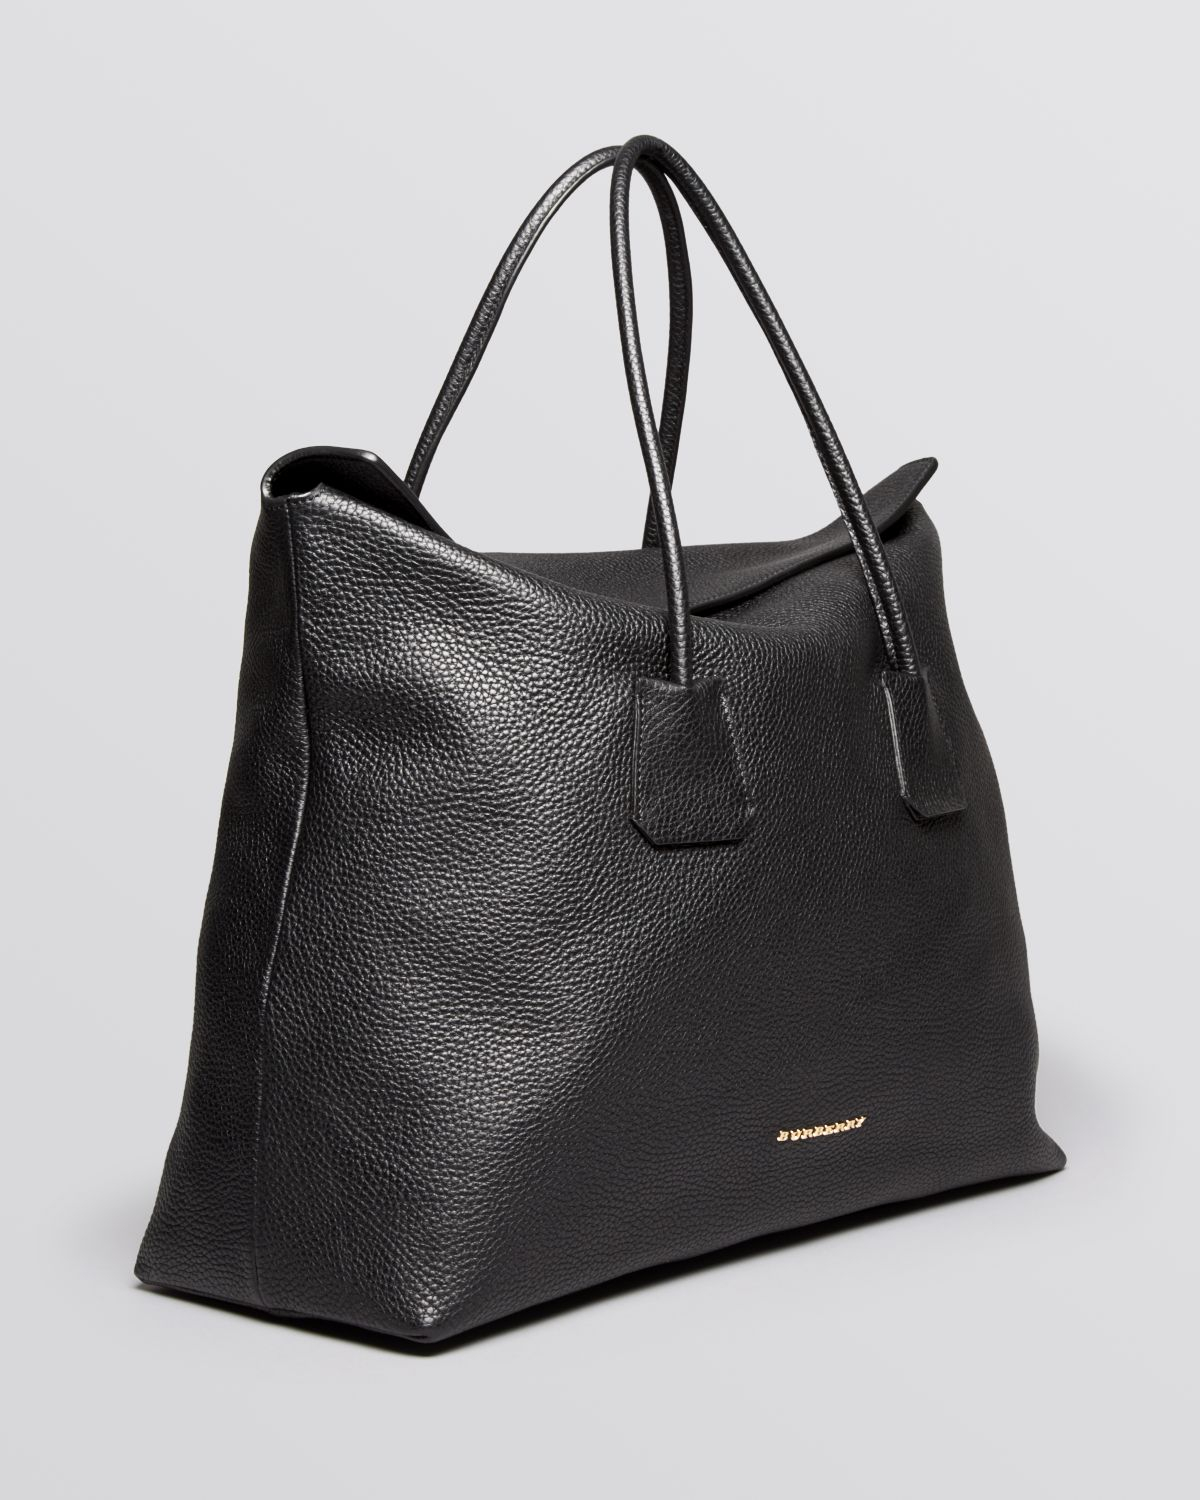 39ee10310c Burberry Tote London Grainy Leather Large Baynard in Black - Lyst